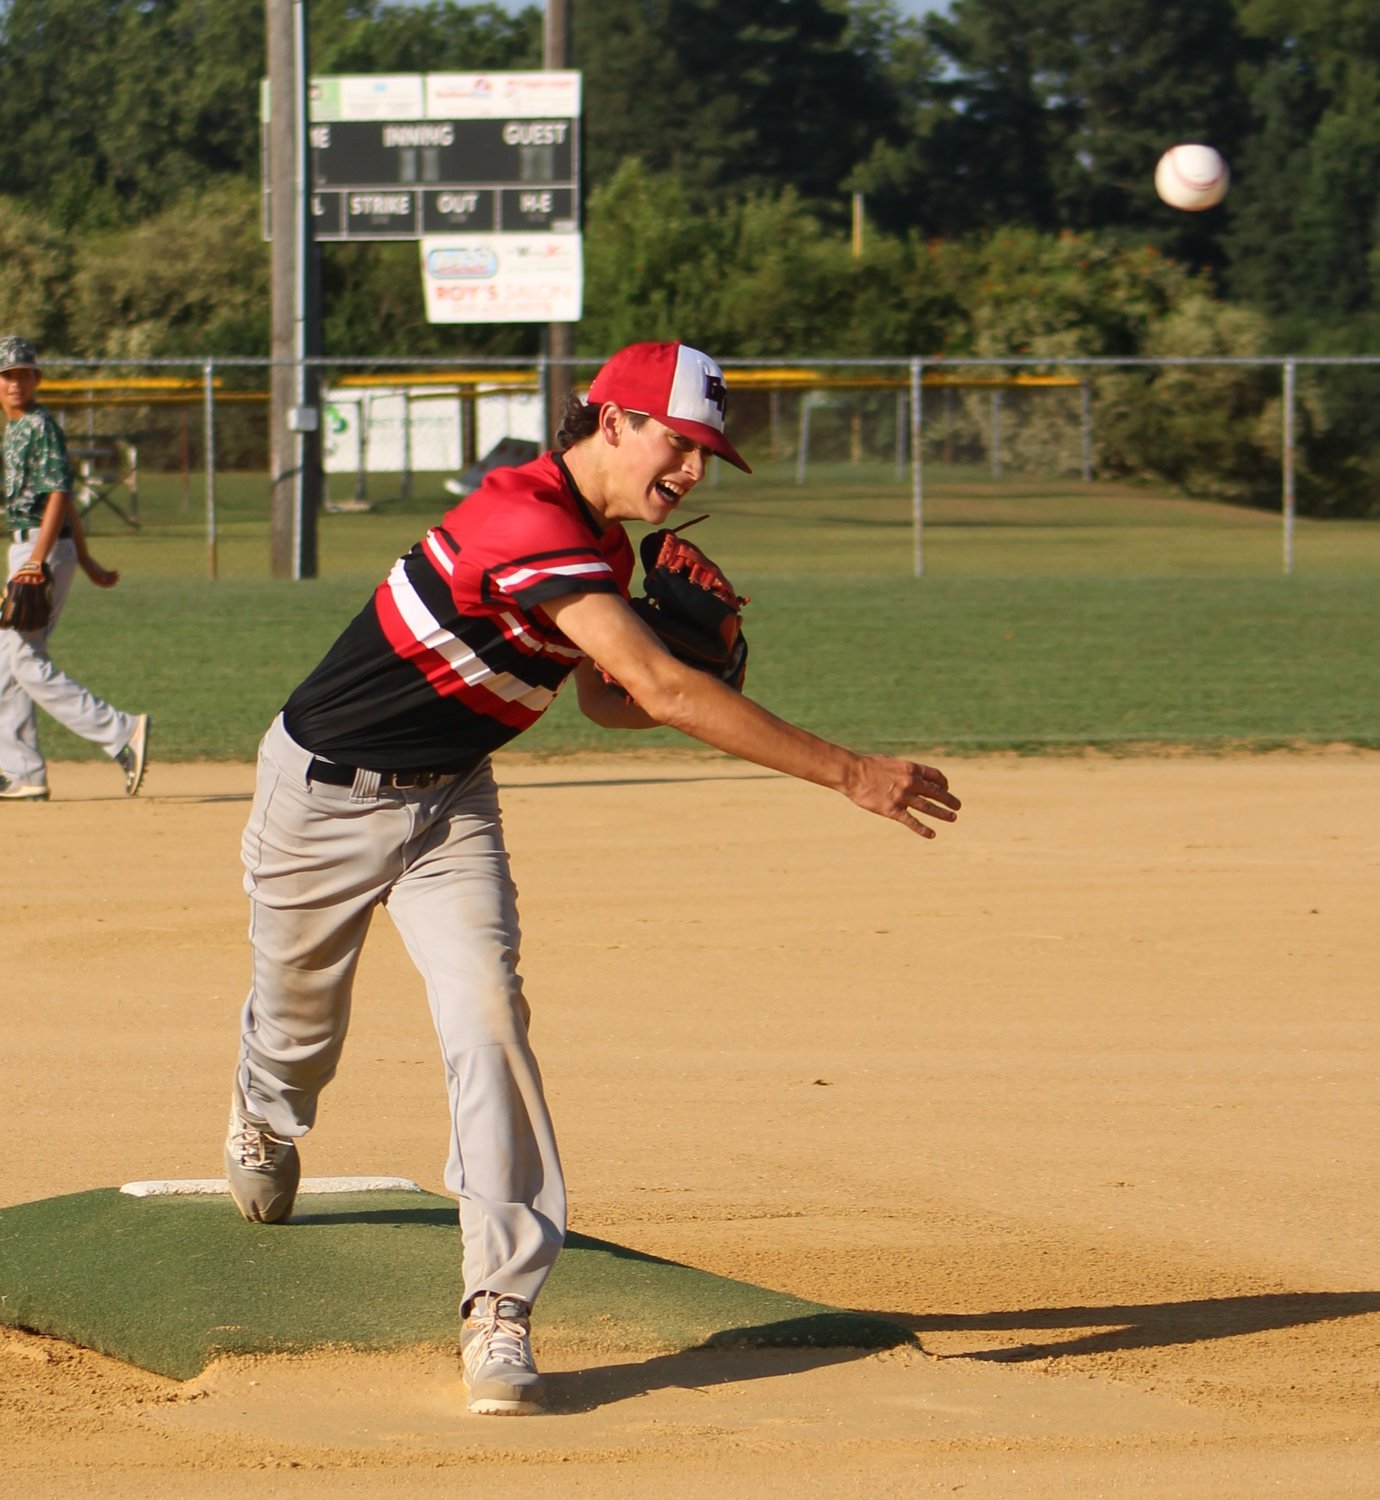 Mount Olive Green Machine right-hander Richard Noble fires a pitch toward the plate during a recent outing. Noble emerged as the winning pitcher in Mount Olive's come-from-behind, 6-3 conquest of the Garner Junior Nationals on Tuesday evening.